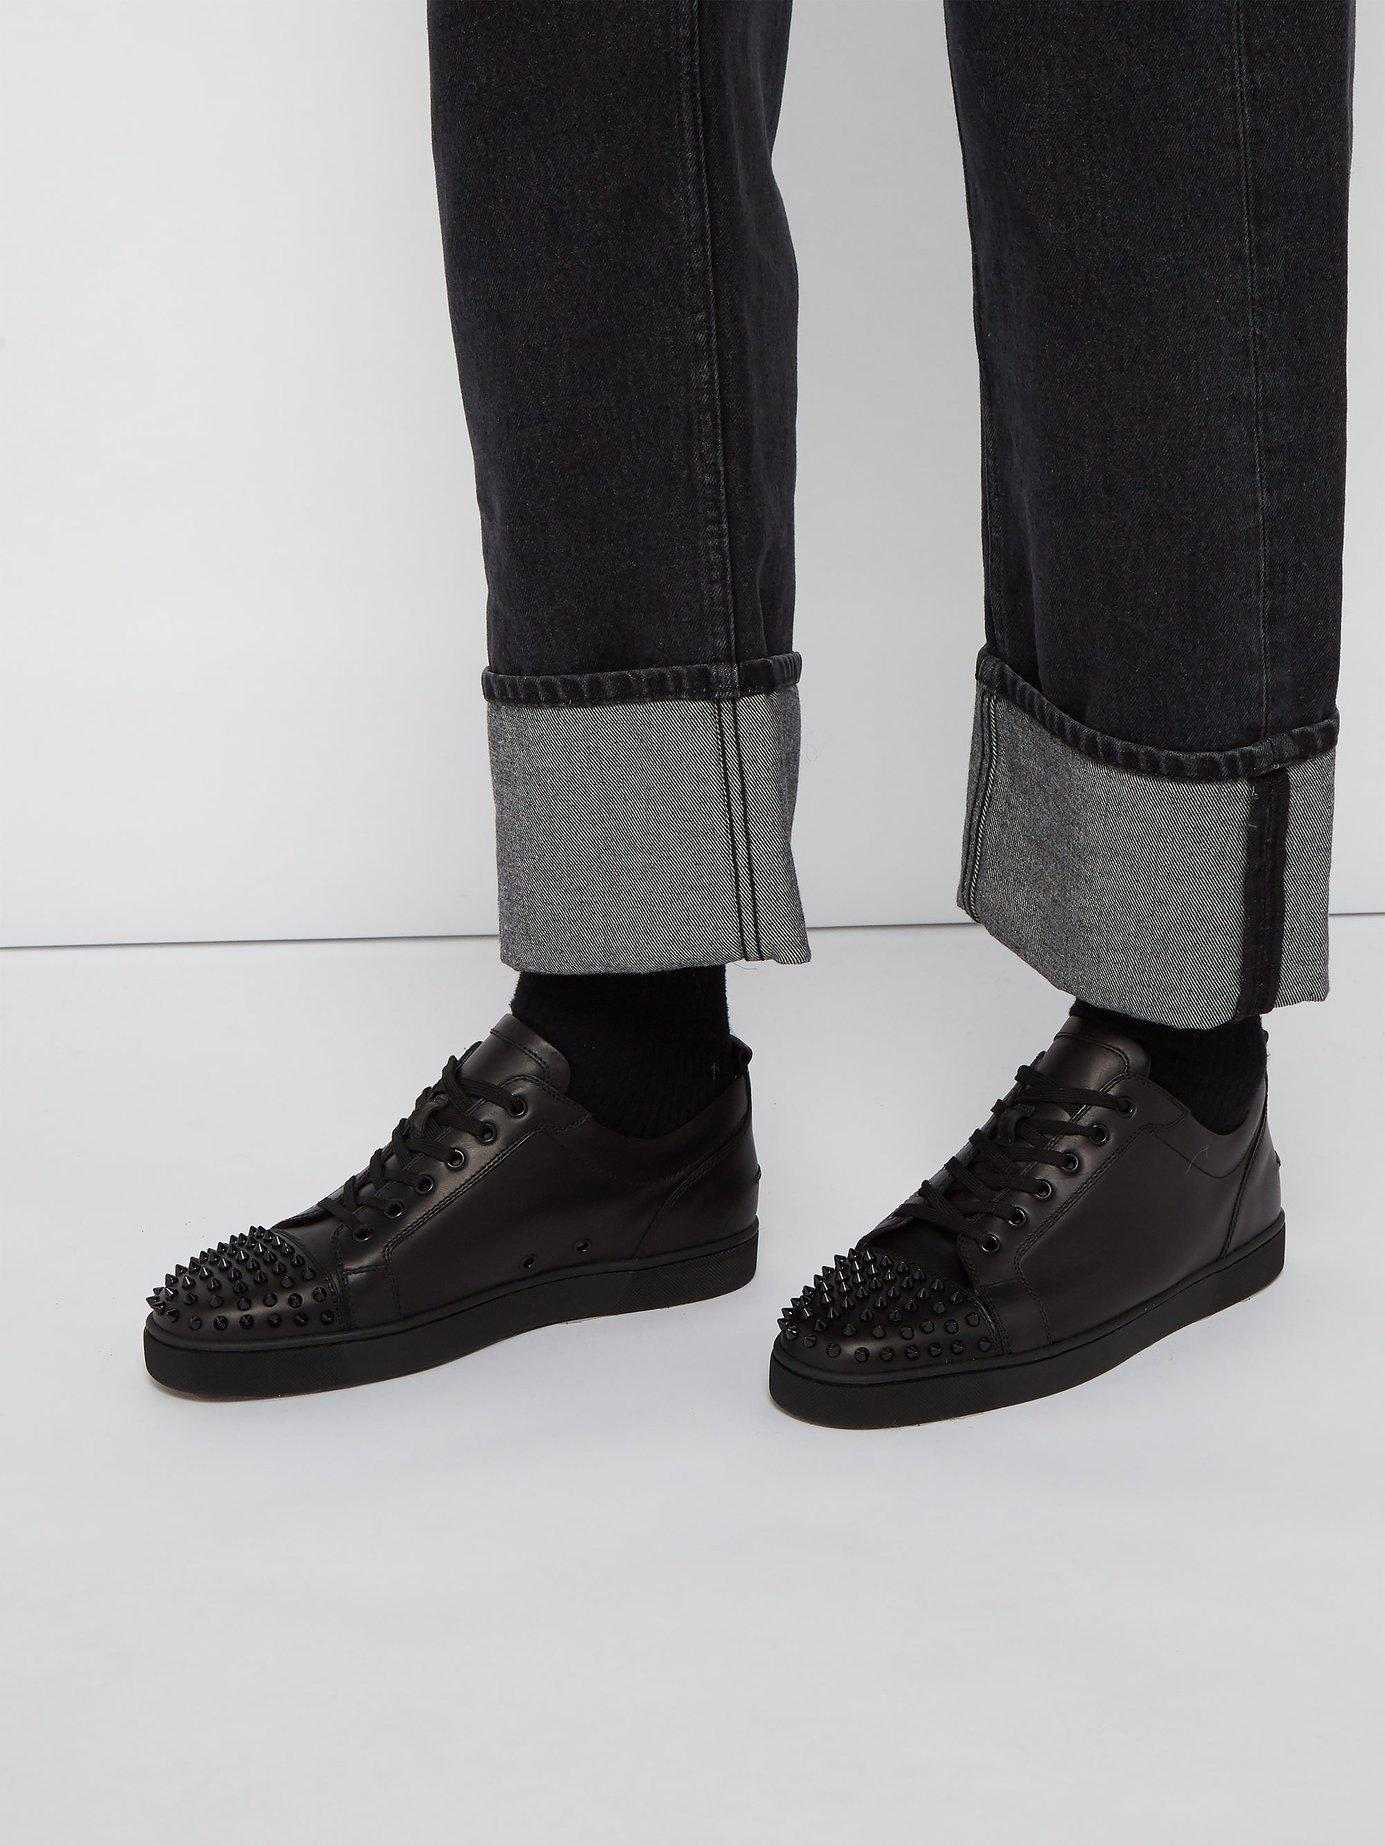 fb085638641c Lyst - Christian Louboutin Louis Junior Low Top Leather Trainers in Black  for Men